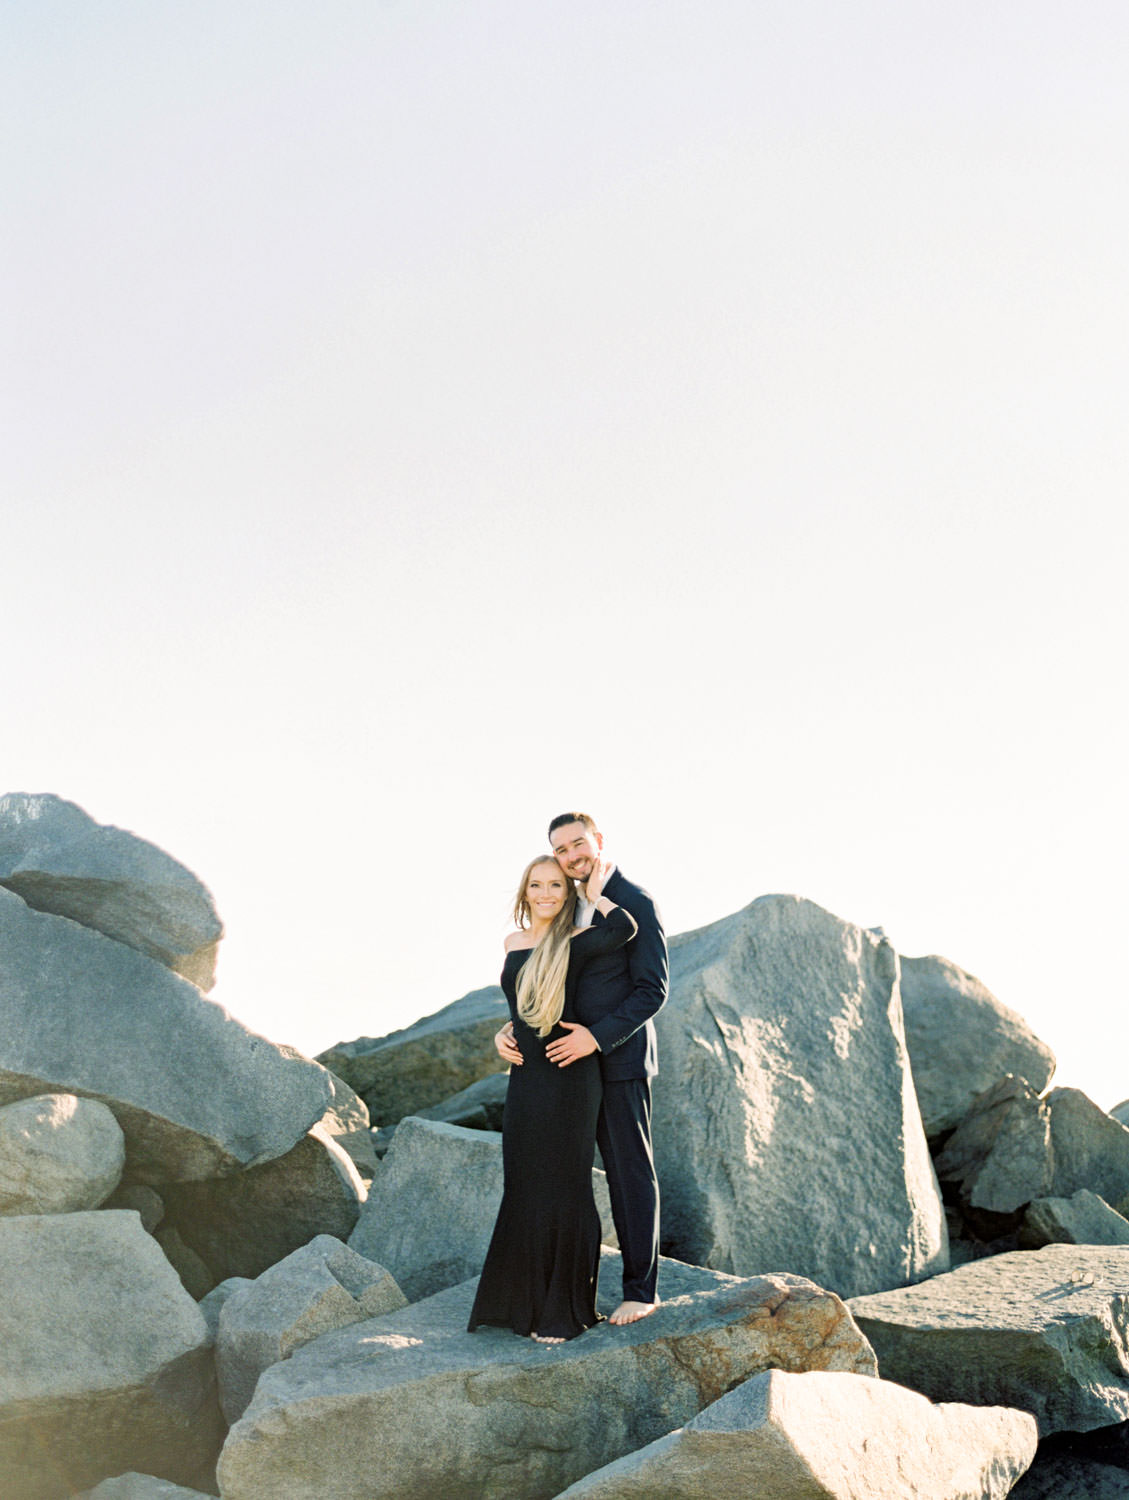 Bride in black off shoulder long sleeve gown and groom in suit. Hotel Del Coronado Engagement Photos on the rock pile on film by Cavin Elizabeth Photography.